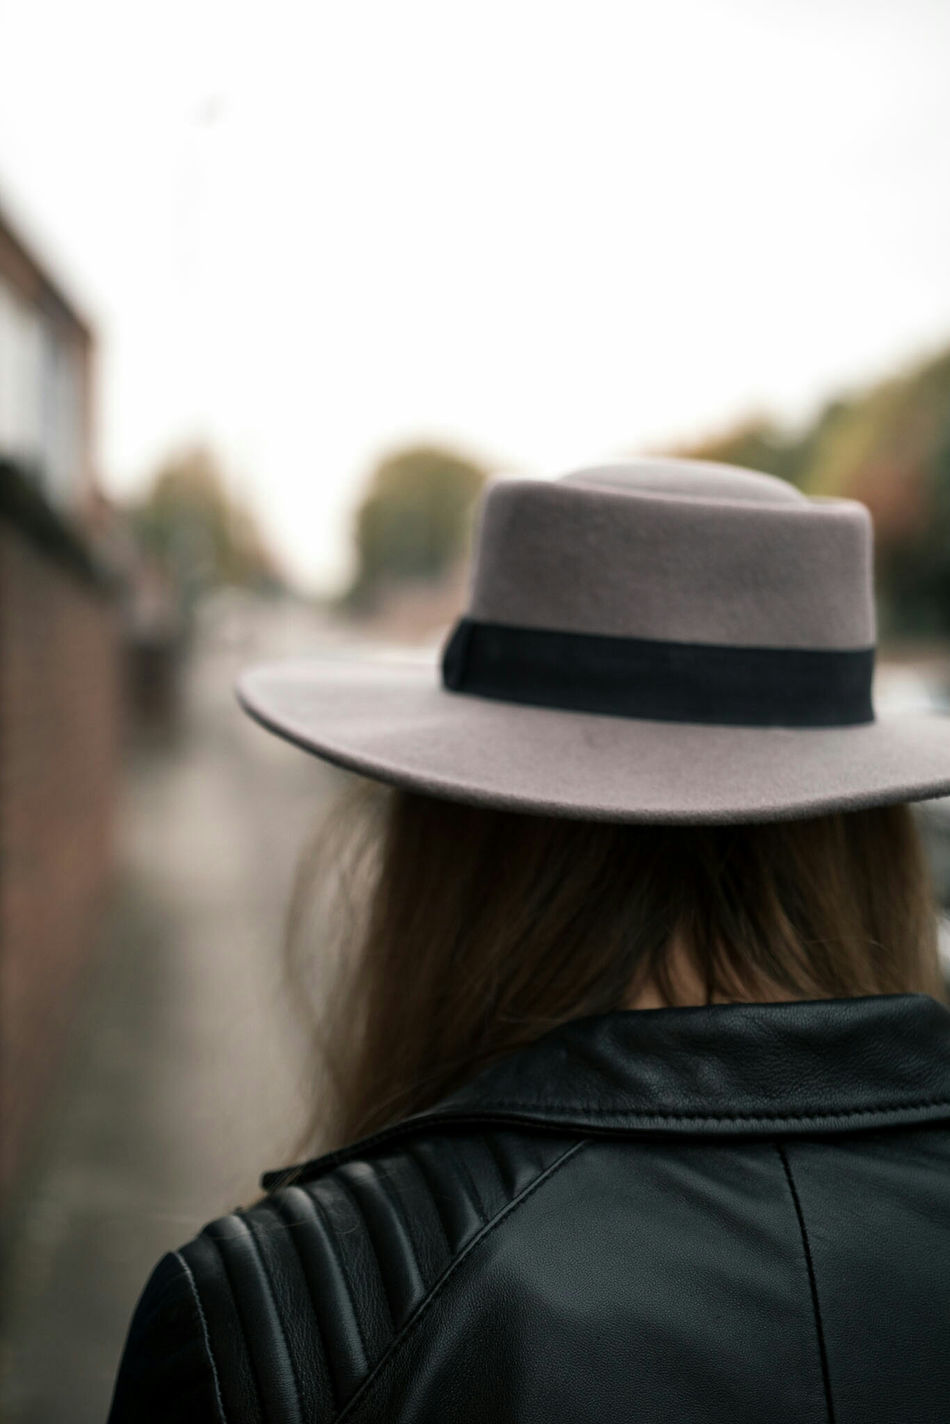 Stand and stare pt.2 Hat Headshot Rear View Women Adult People Mature Adult One Person Close-up Beauty One Woman Only Adults Only Human Body Part Outdoors Day Fashion Fashion Portrait Portrait